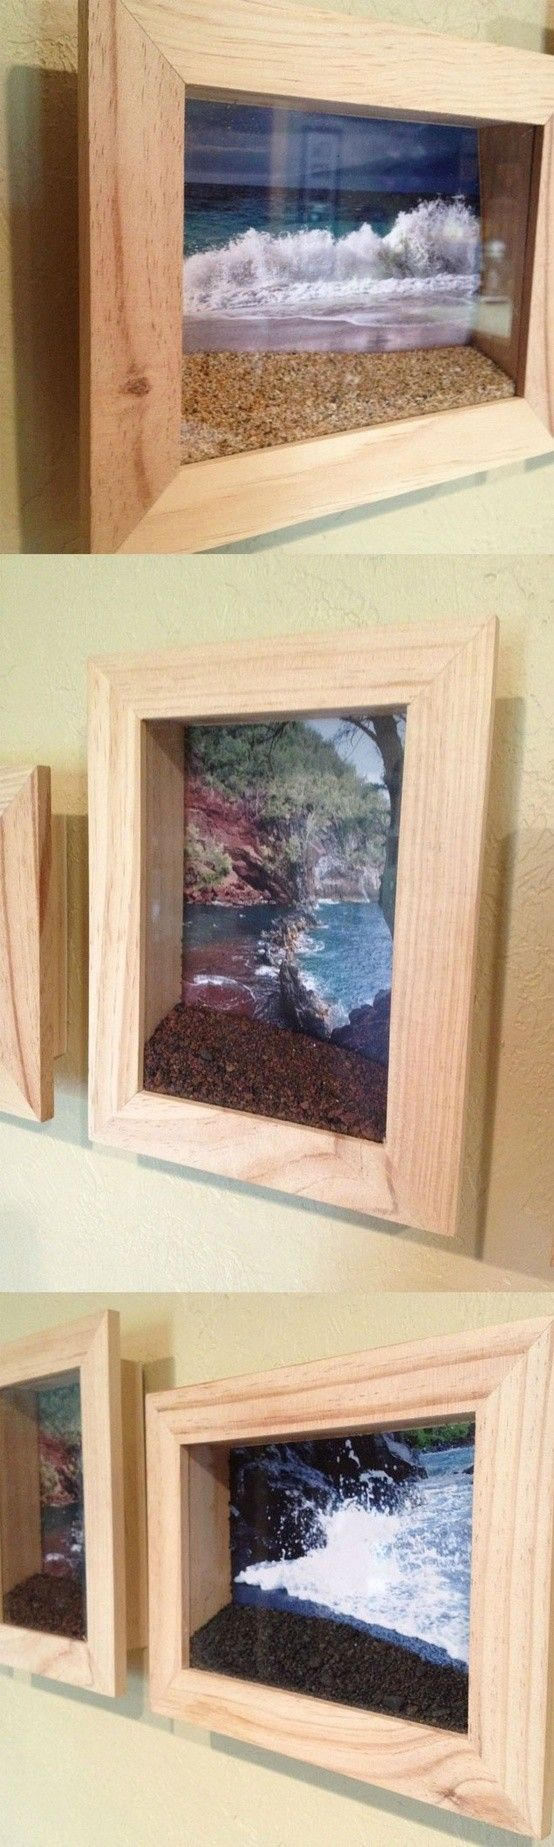 deep frame with beach sand - use vacation photos with shells at bottom